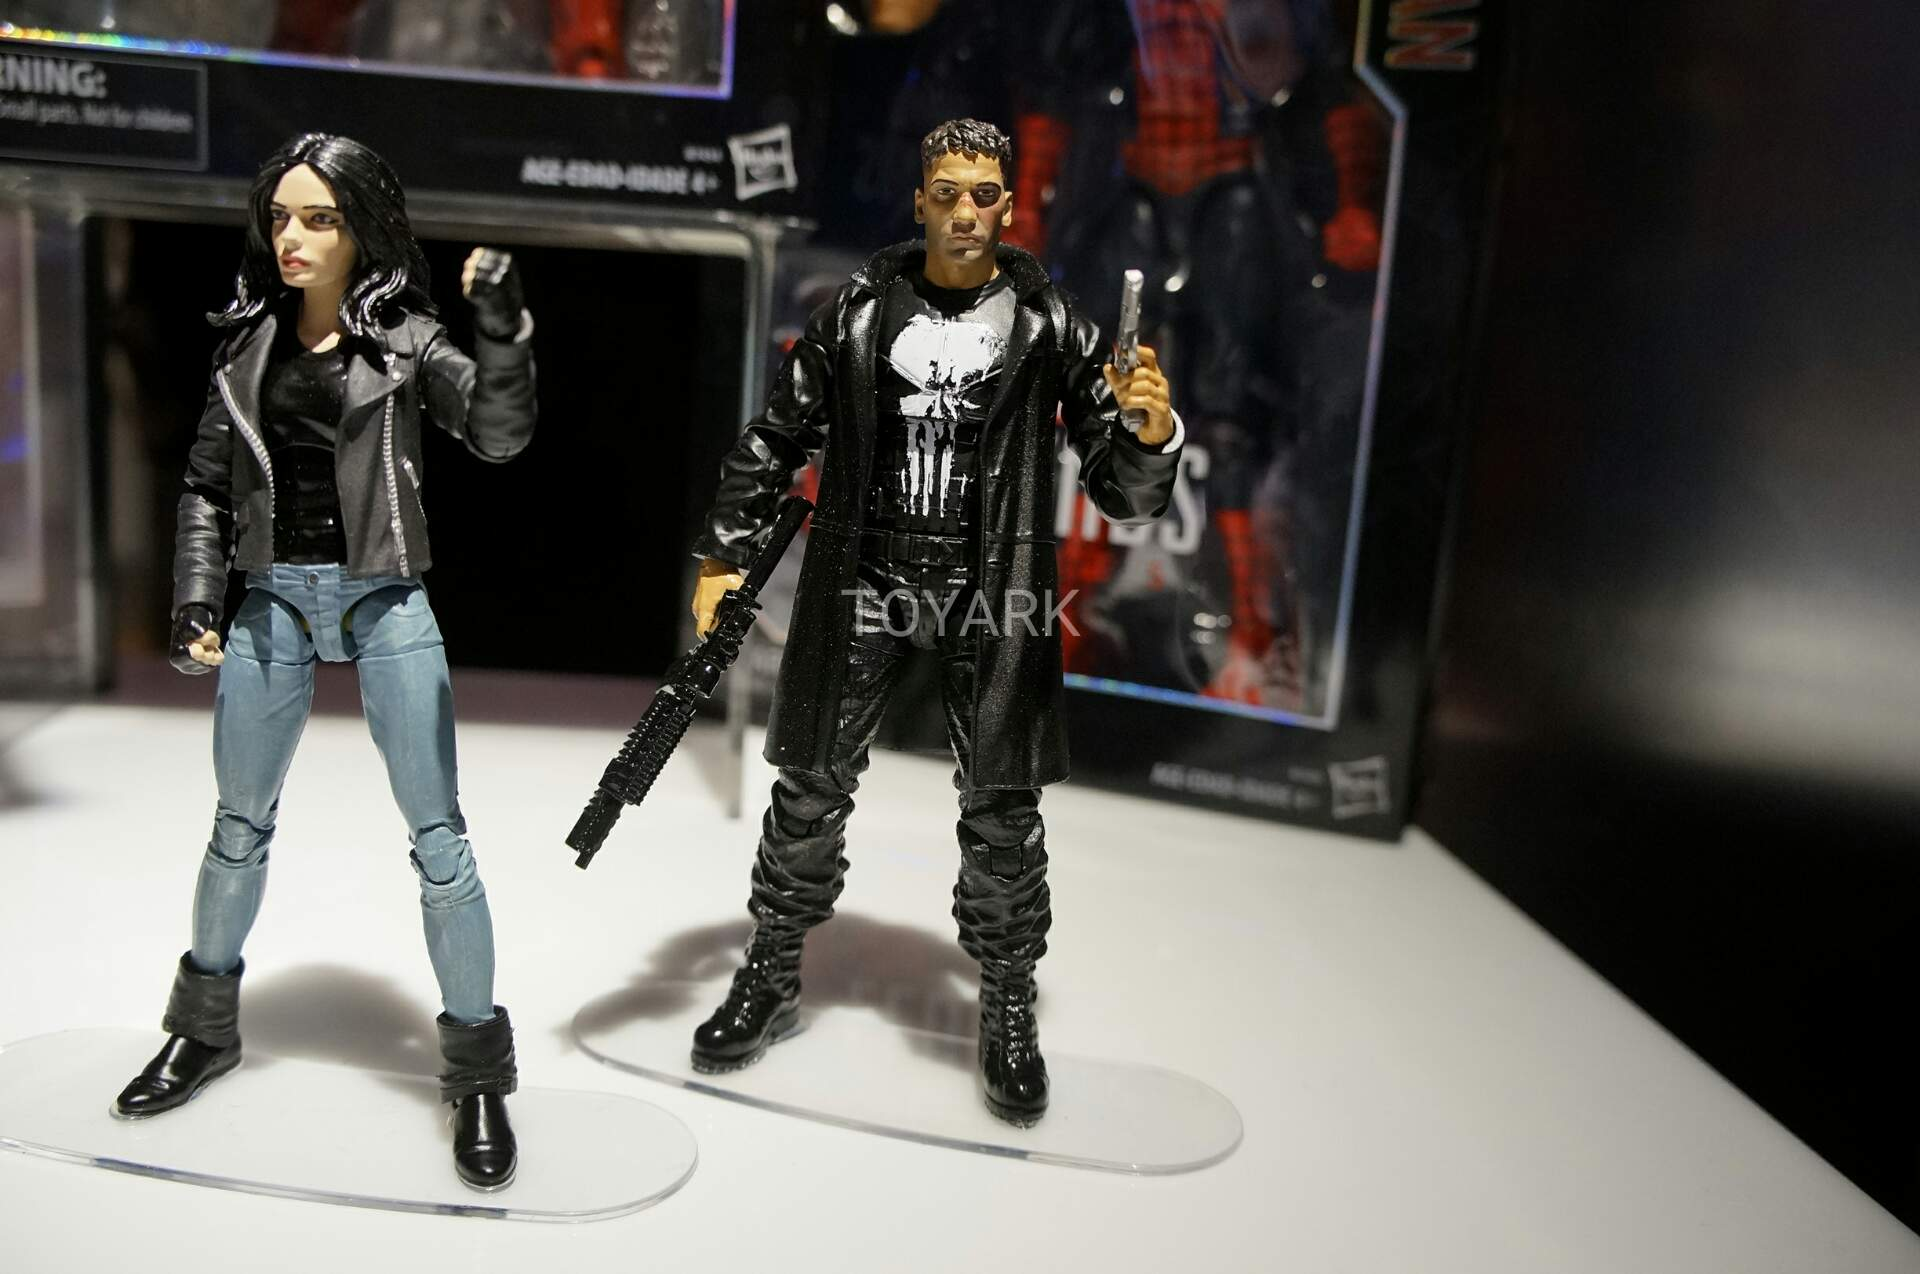 Photo taken from this year's New York Toy Fair held this weekend.